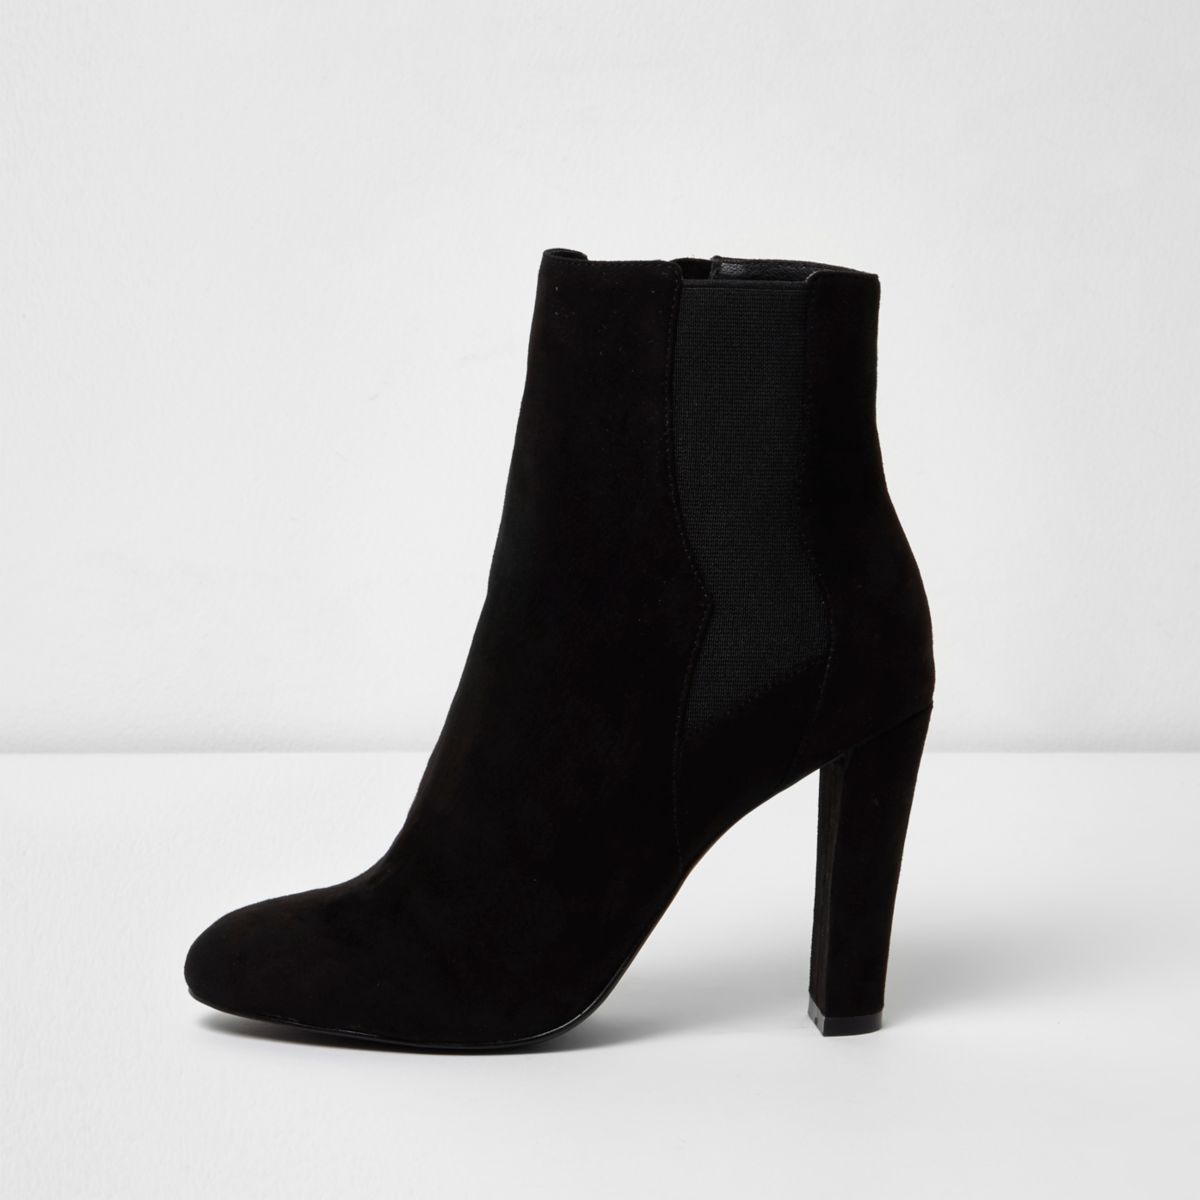 Boots for women with heels